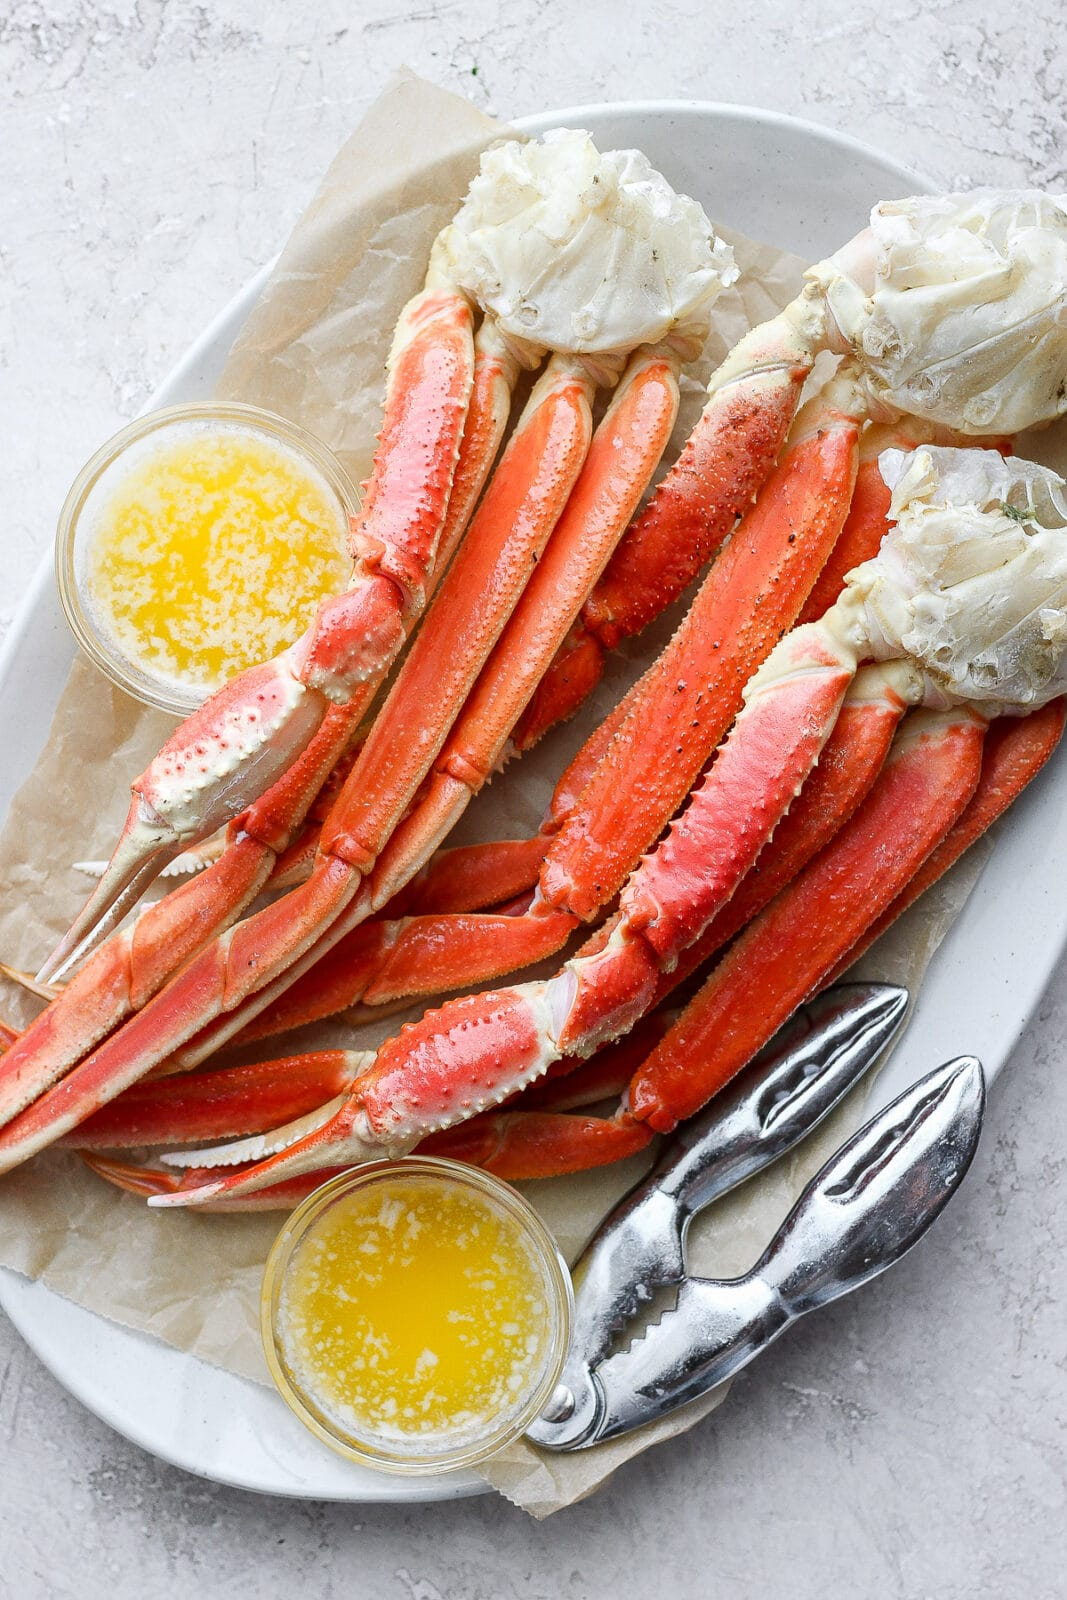 Plate of baked crab legs with little bowls of ghee next to them.